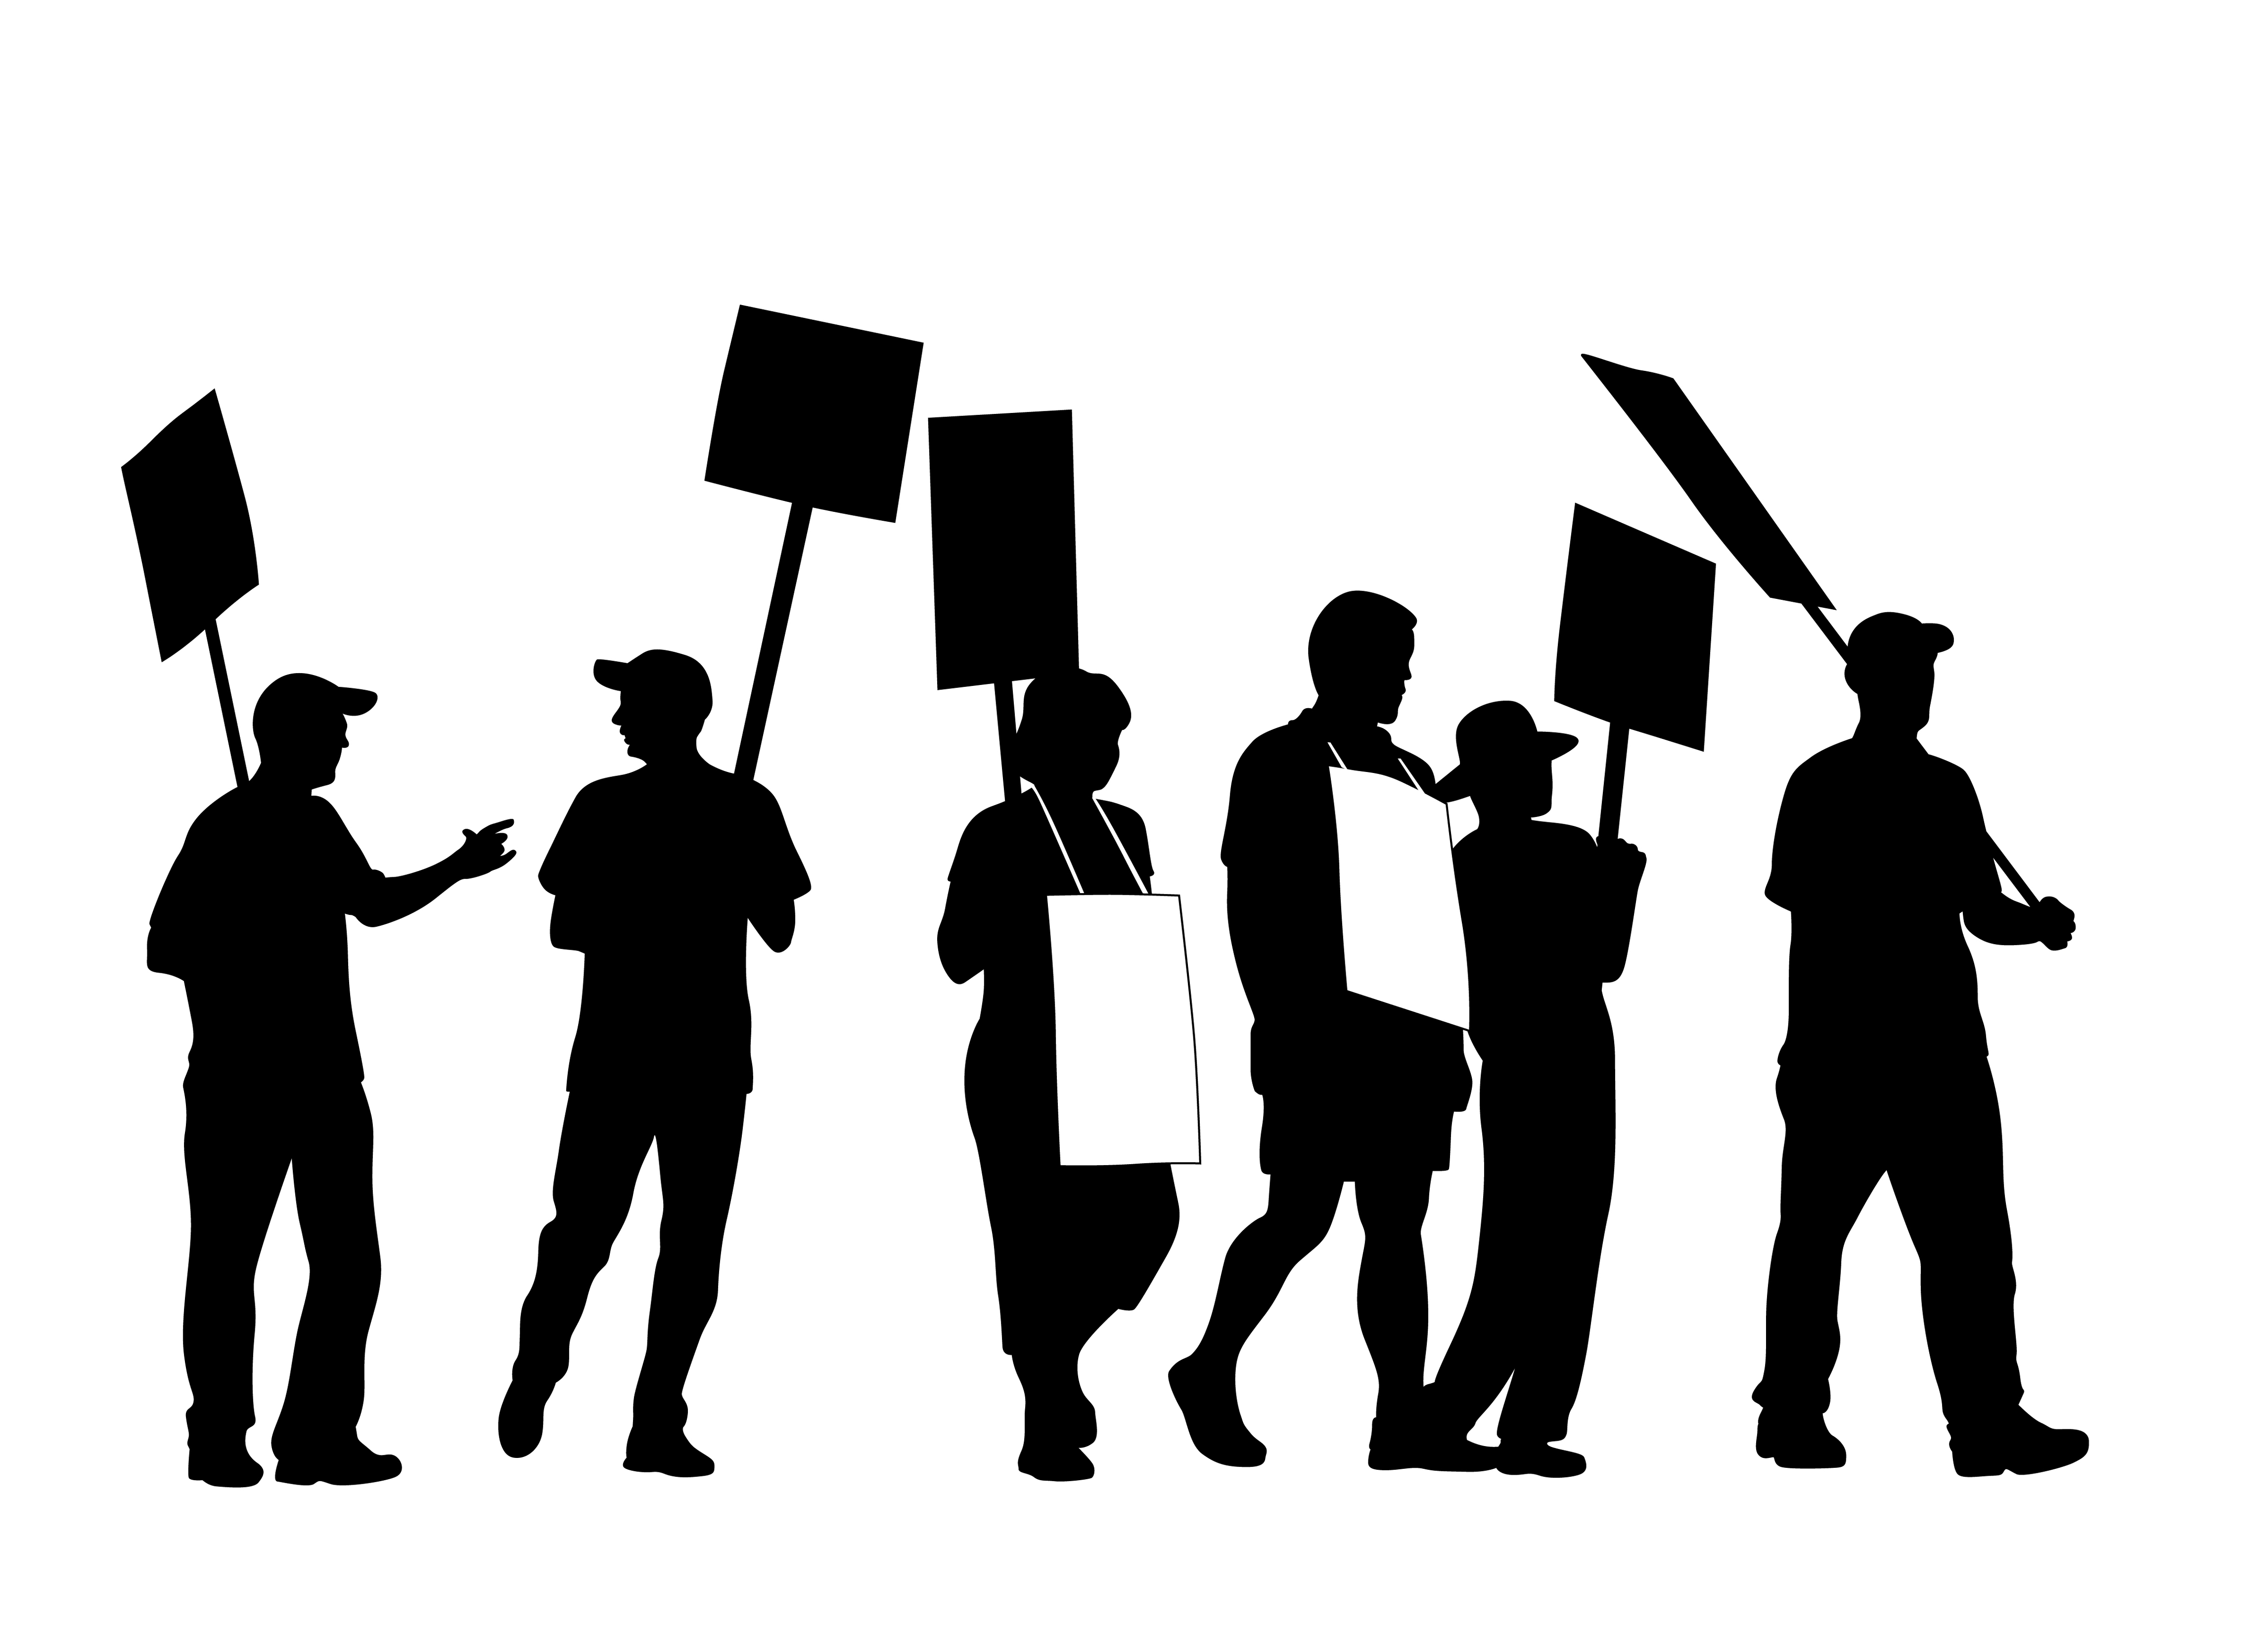 protesters-1.jpg